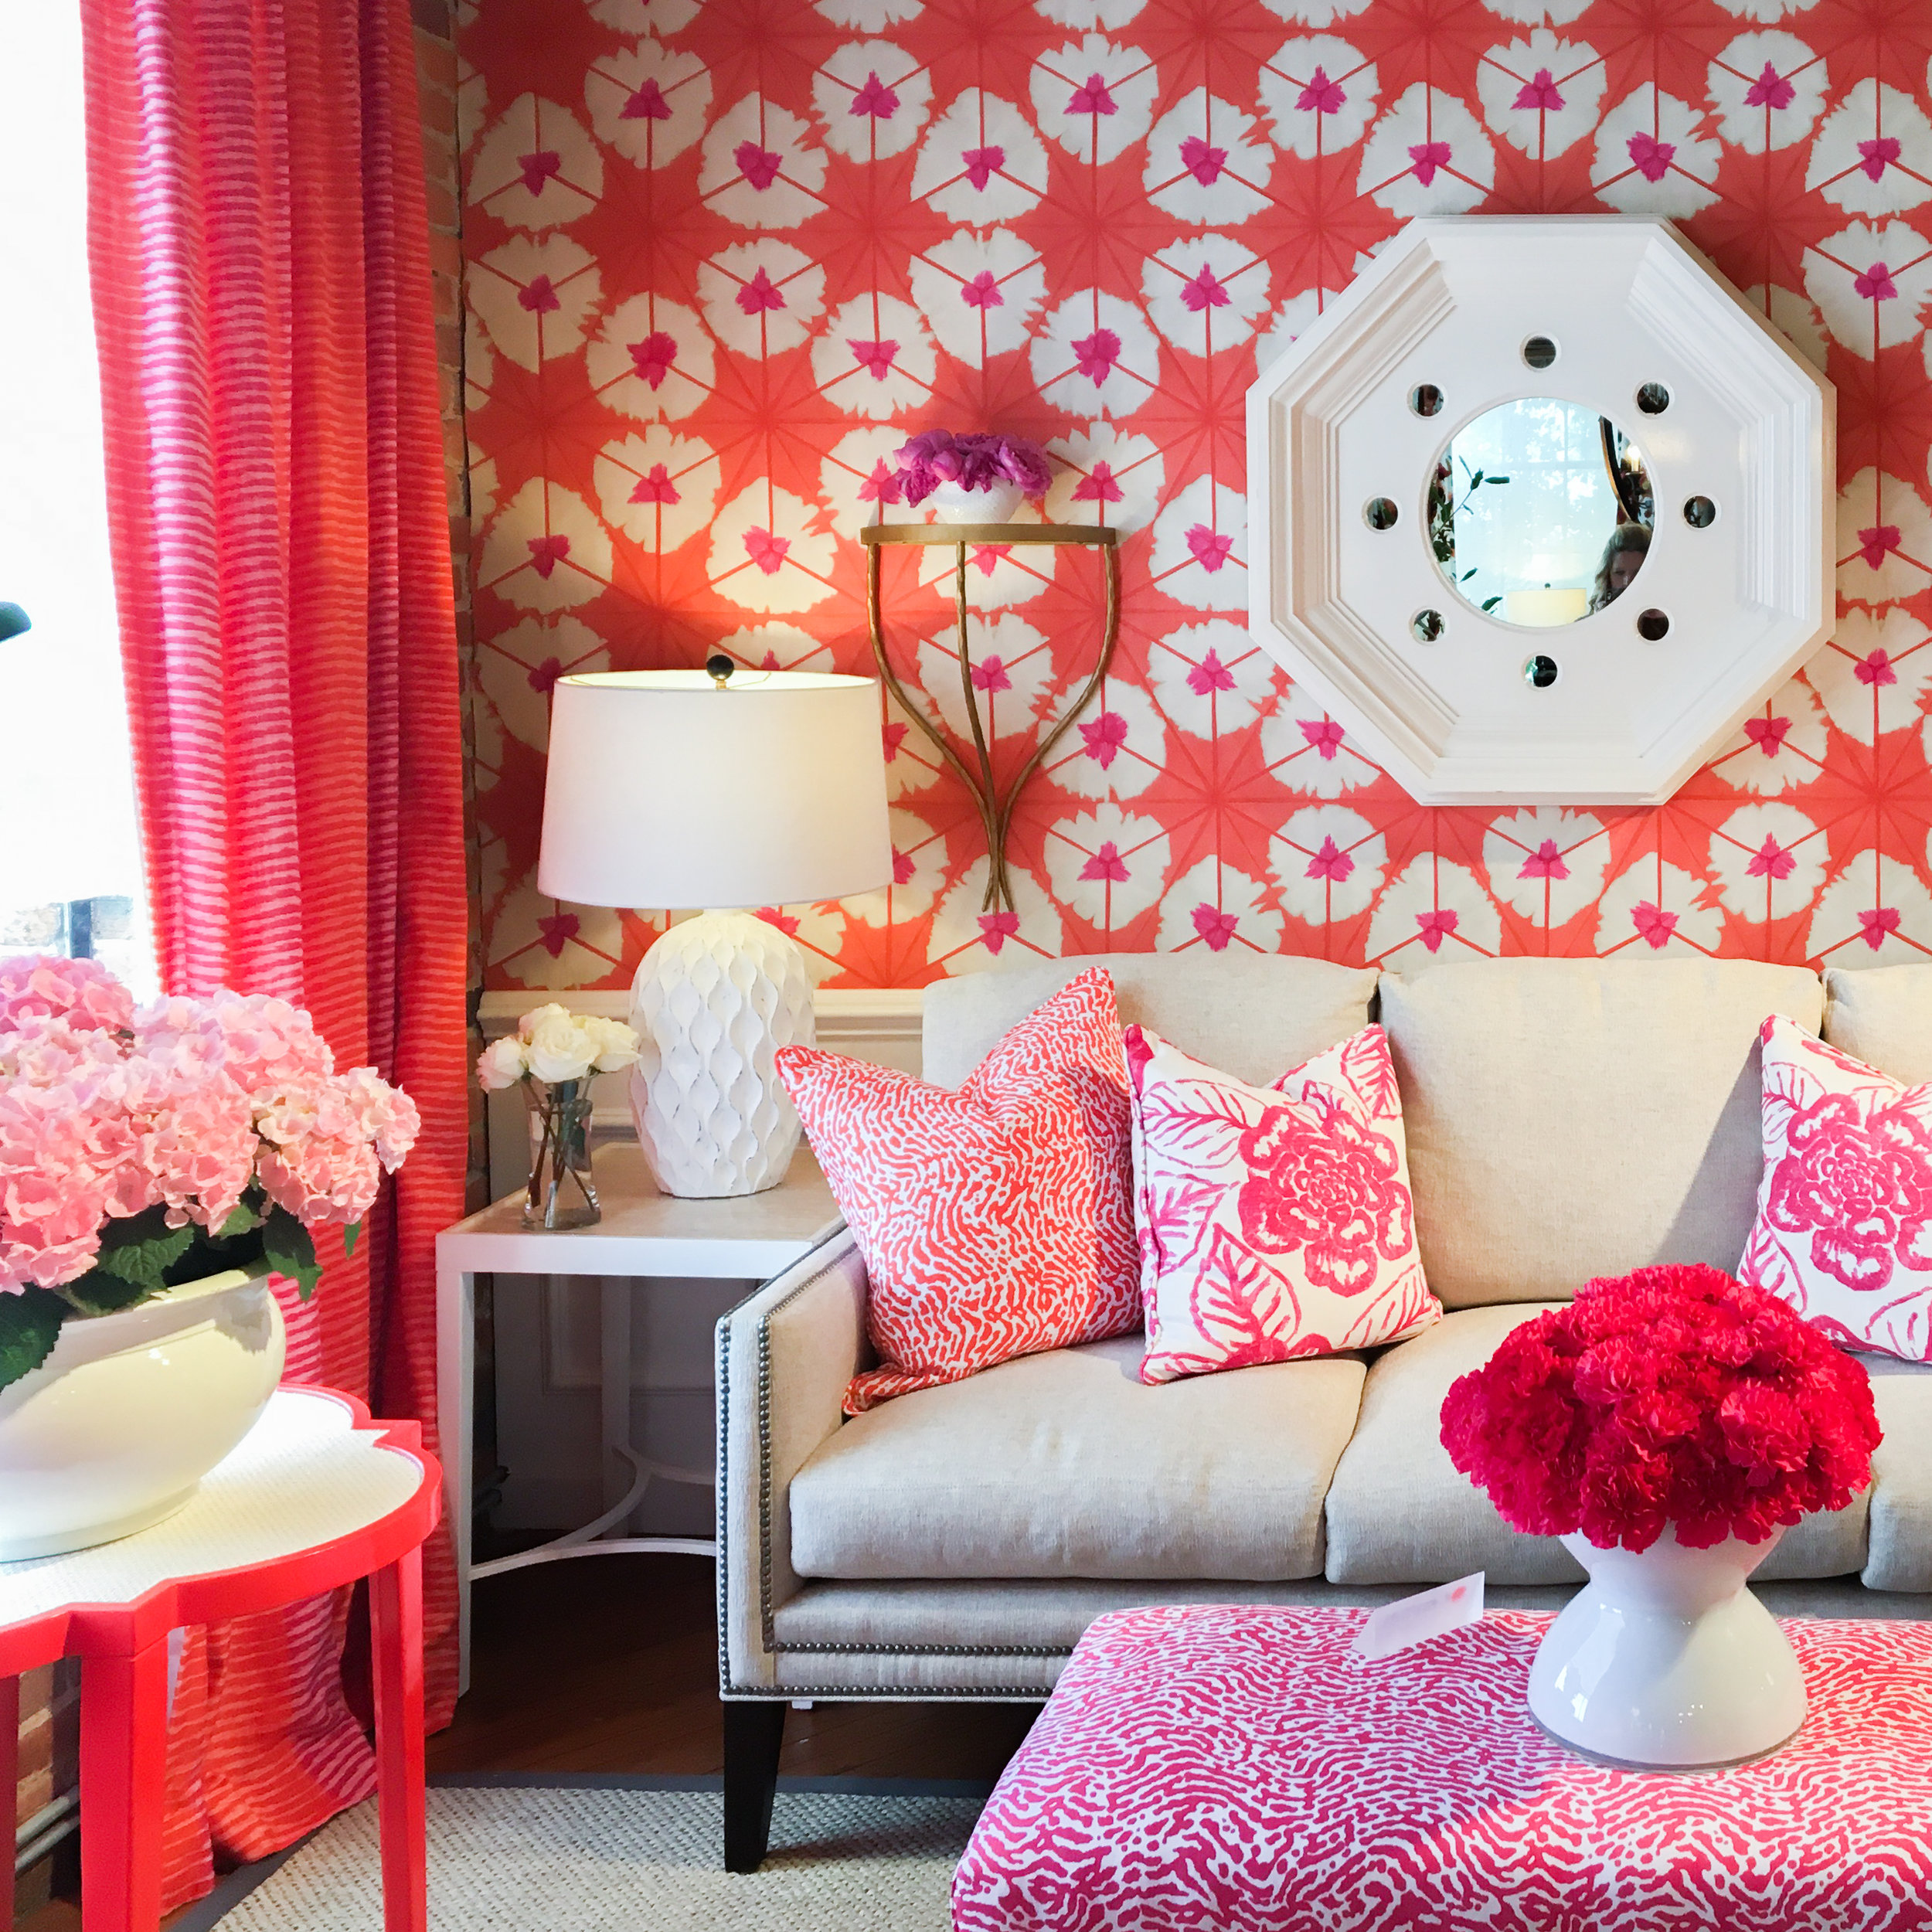 Thibaut's  use of color and pattern is inspiring. Reds, oranges and pinks look sophisticated in this living room design.